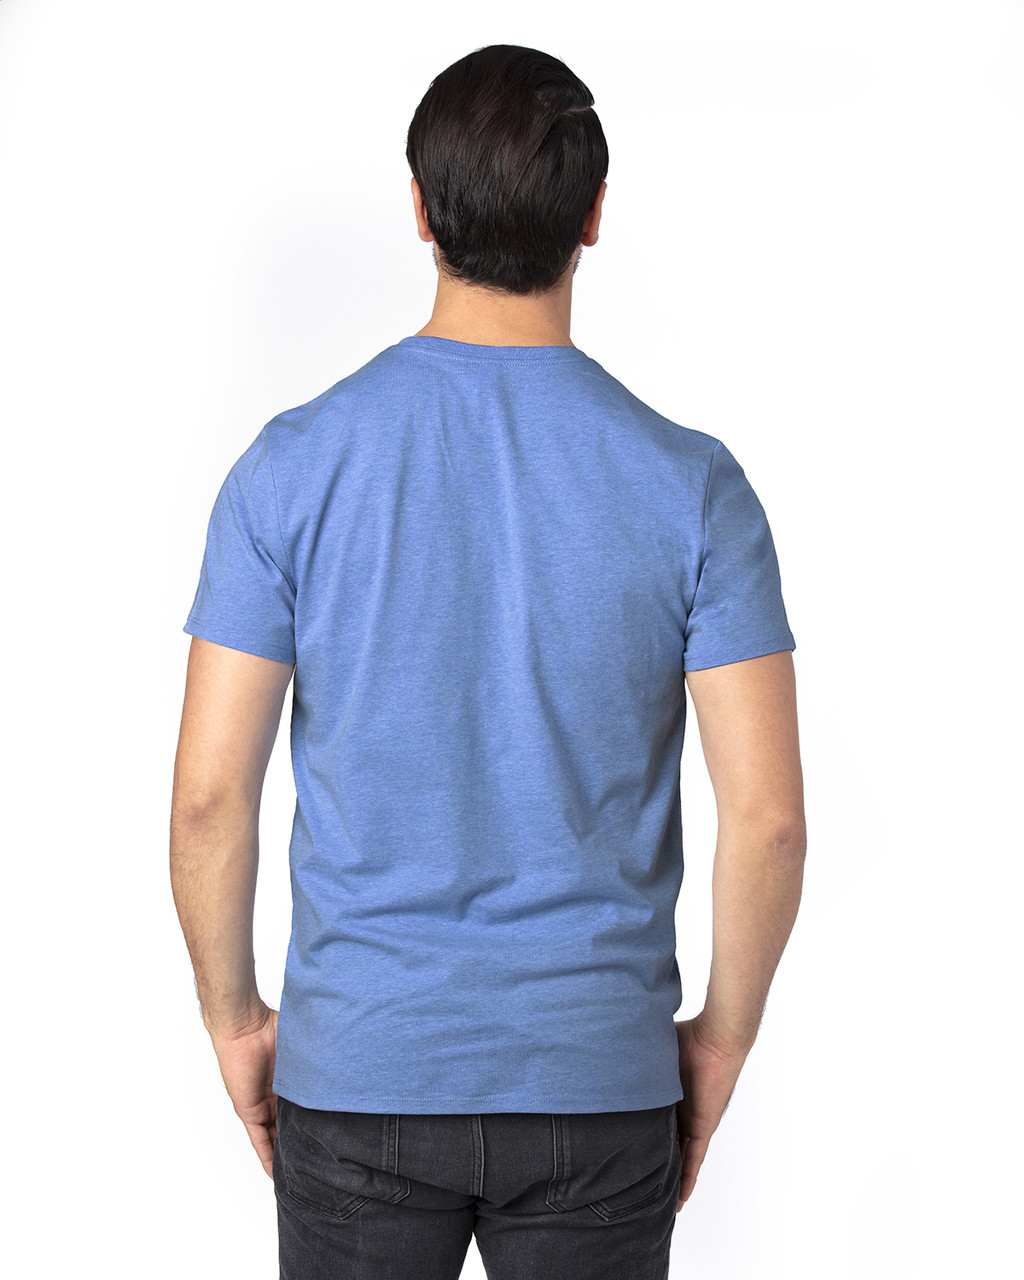 Royal Heather - Back, 100A Threadfast Unisex Ultimate Short-Sleeve T-Shirt | BlankClothing.ca